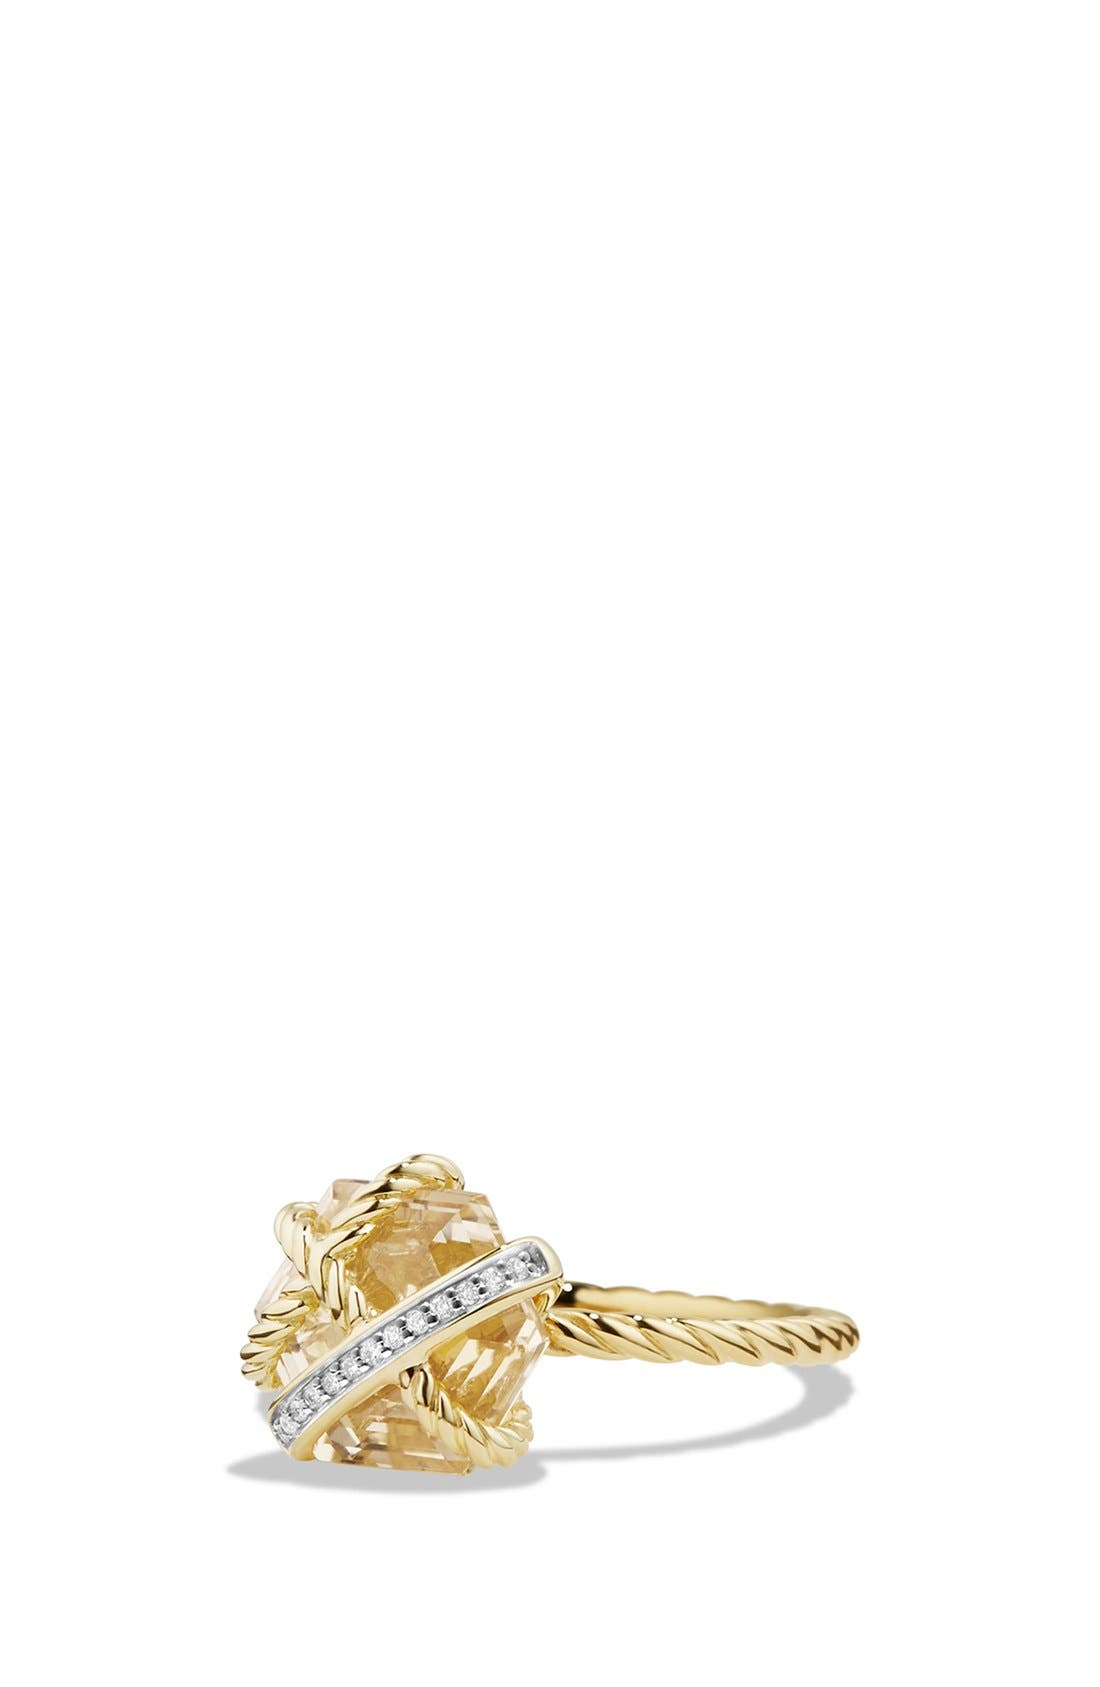 DAVID YURMAN 'Cable Wrap' Ring with Diamonds